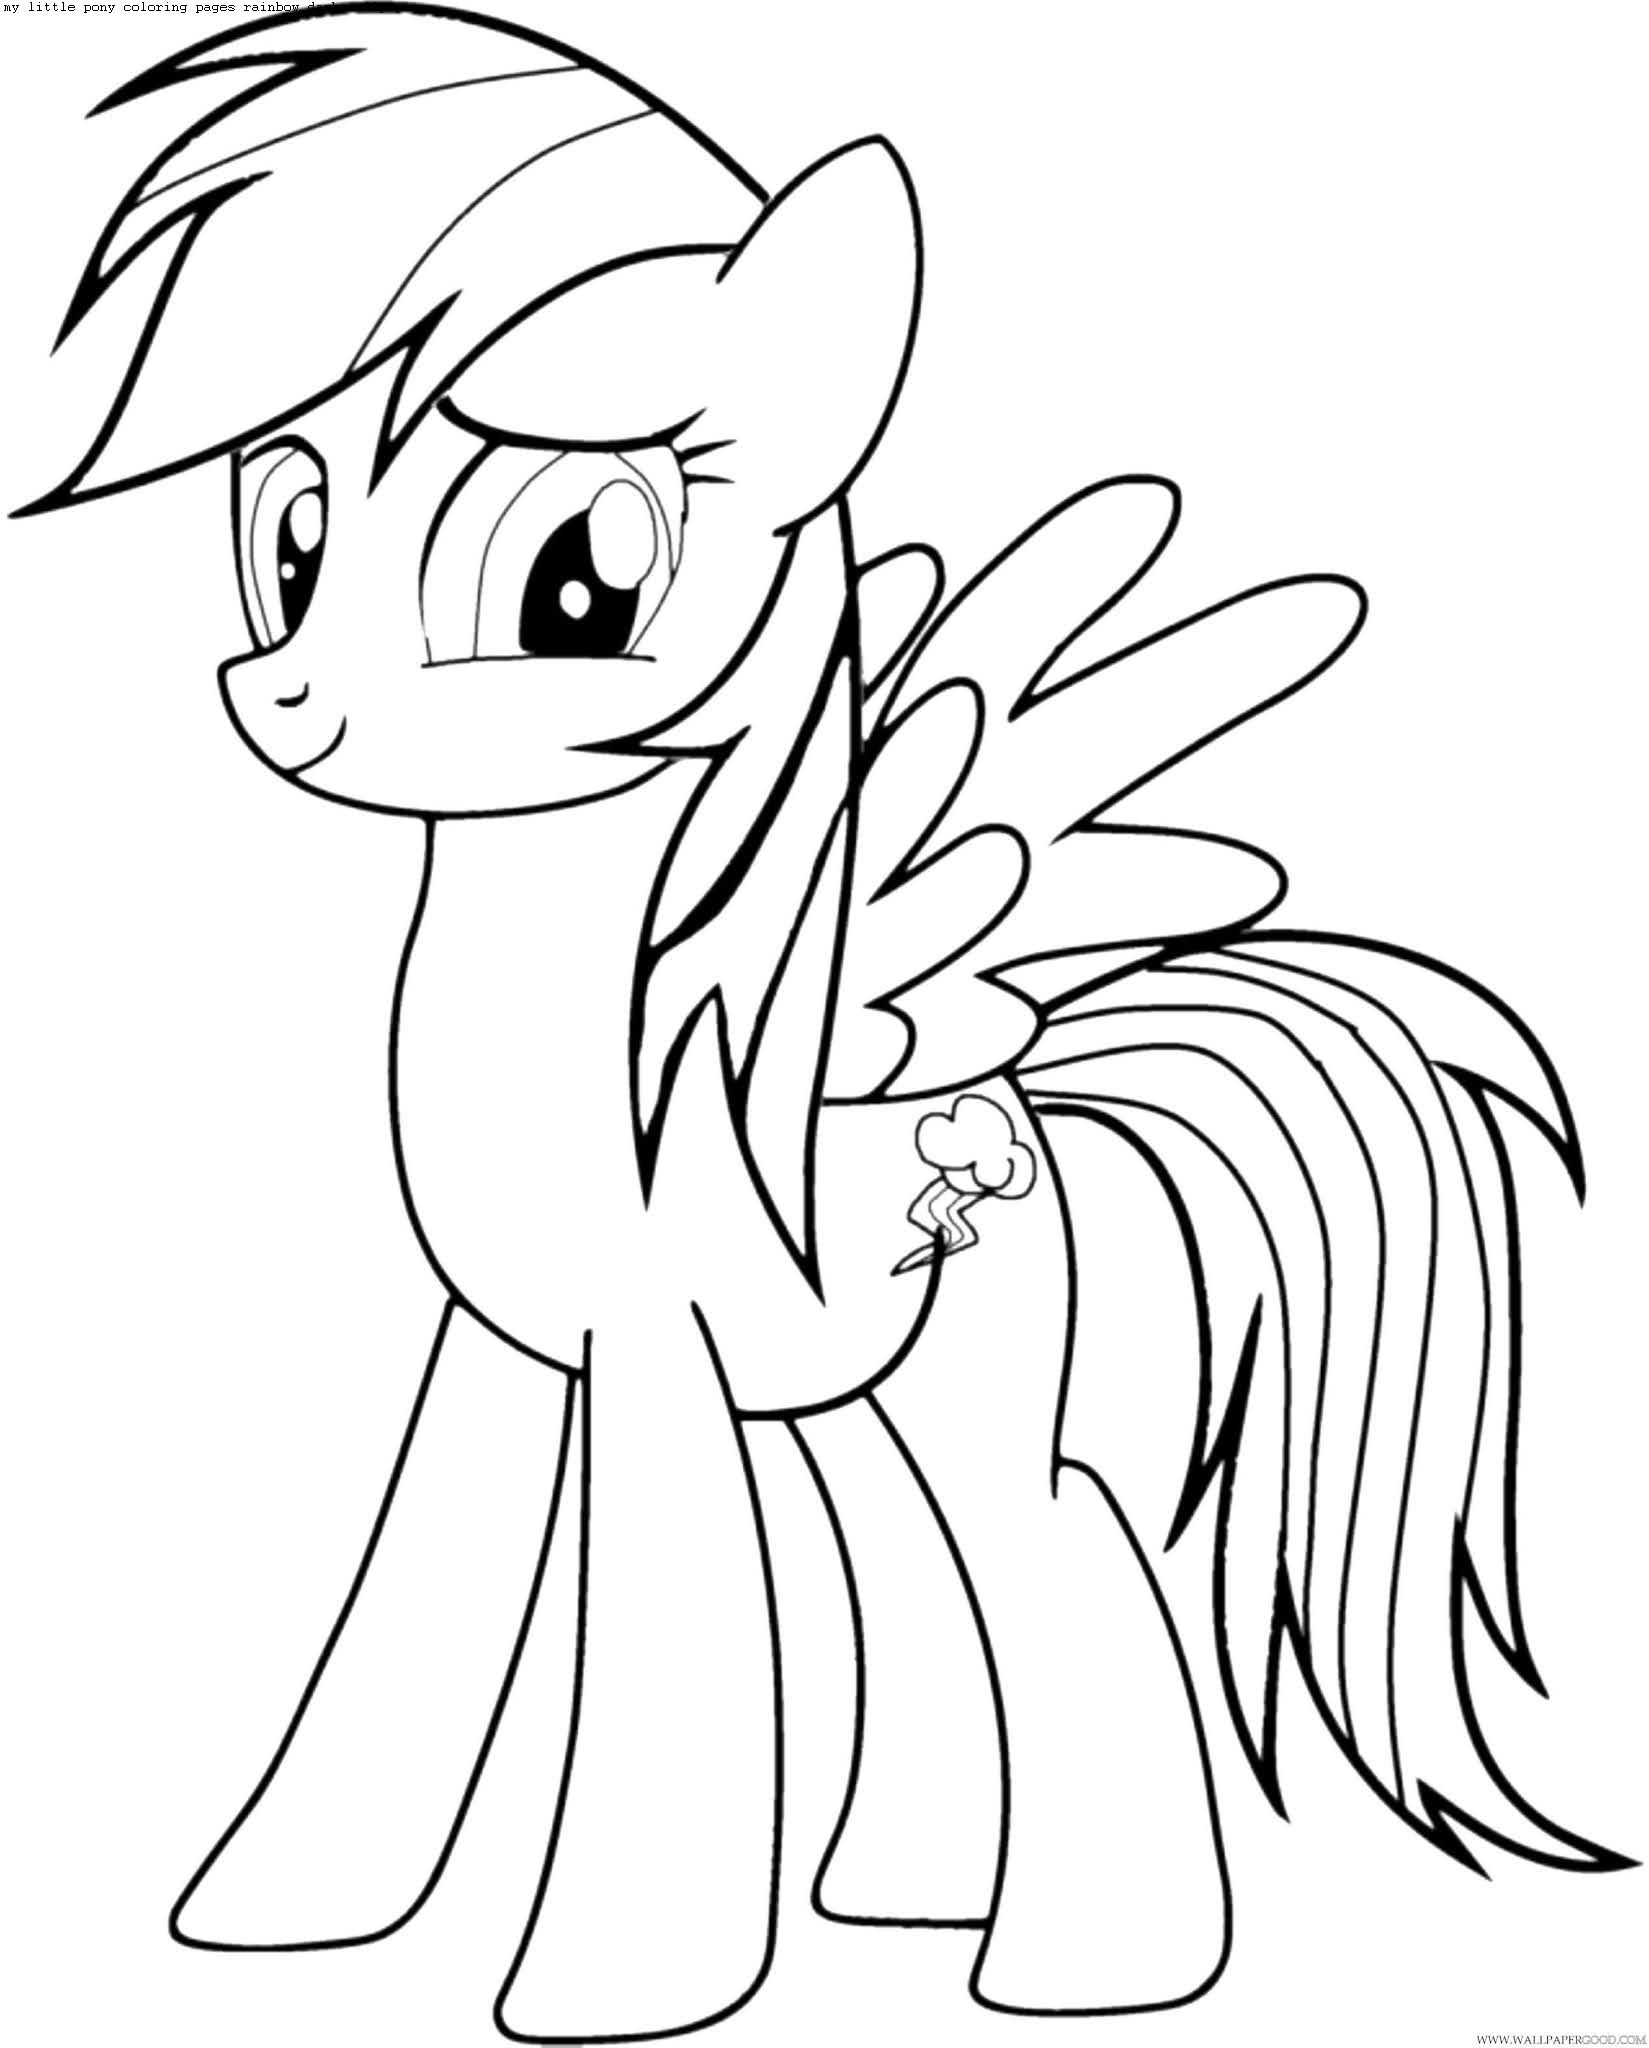 my little pony coloring rainbow dash wallpaper dress bunch of lunch forzen elsa happy and coloring pages Pony Coloring Page